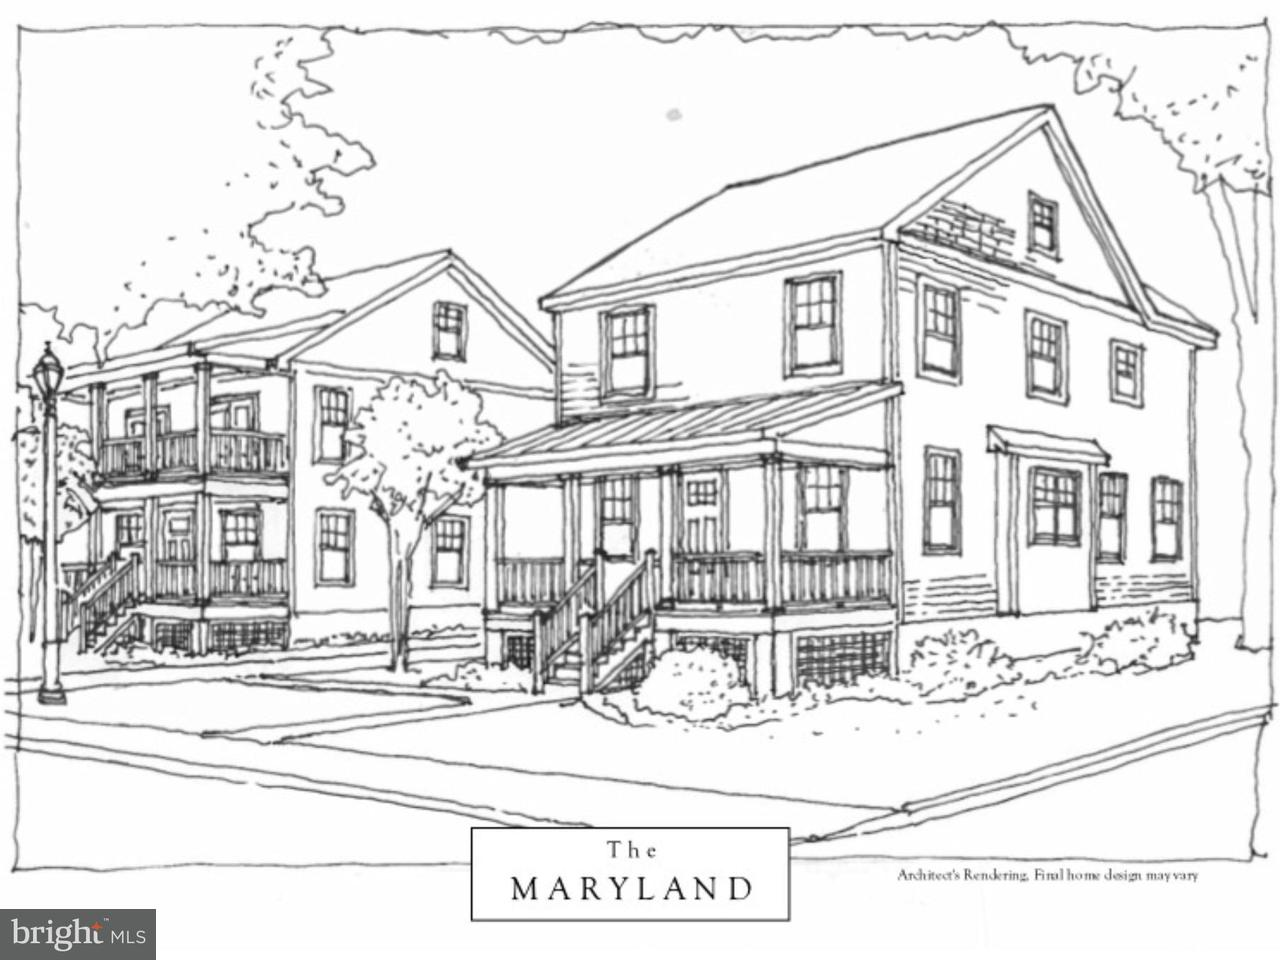 Single Family Home for Sale at 4712 Howard Lane 4712 Howard Lane College Park, Maryland 20740 United States